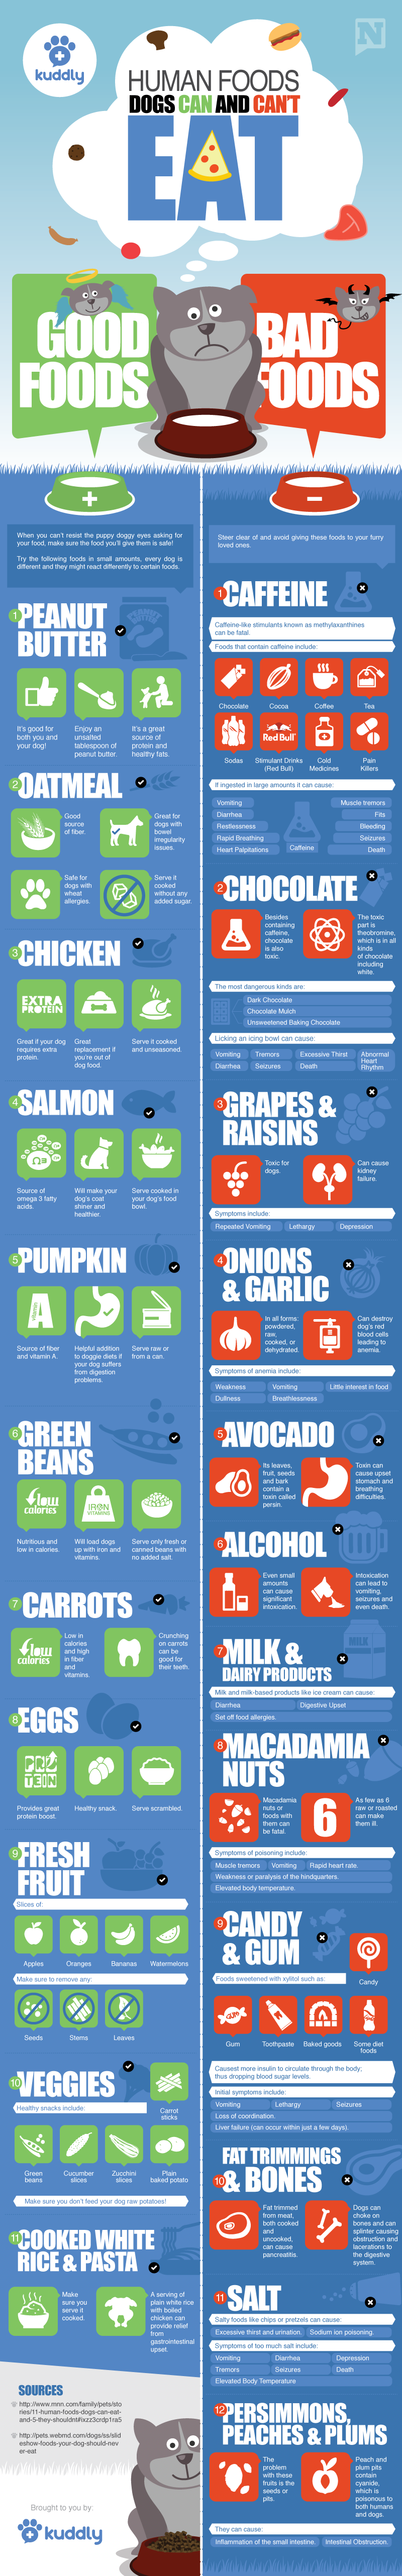 what fruits can dogs eat a list - Google Search | Pertinent Pet ...